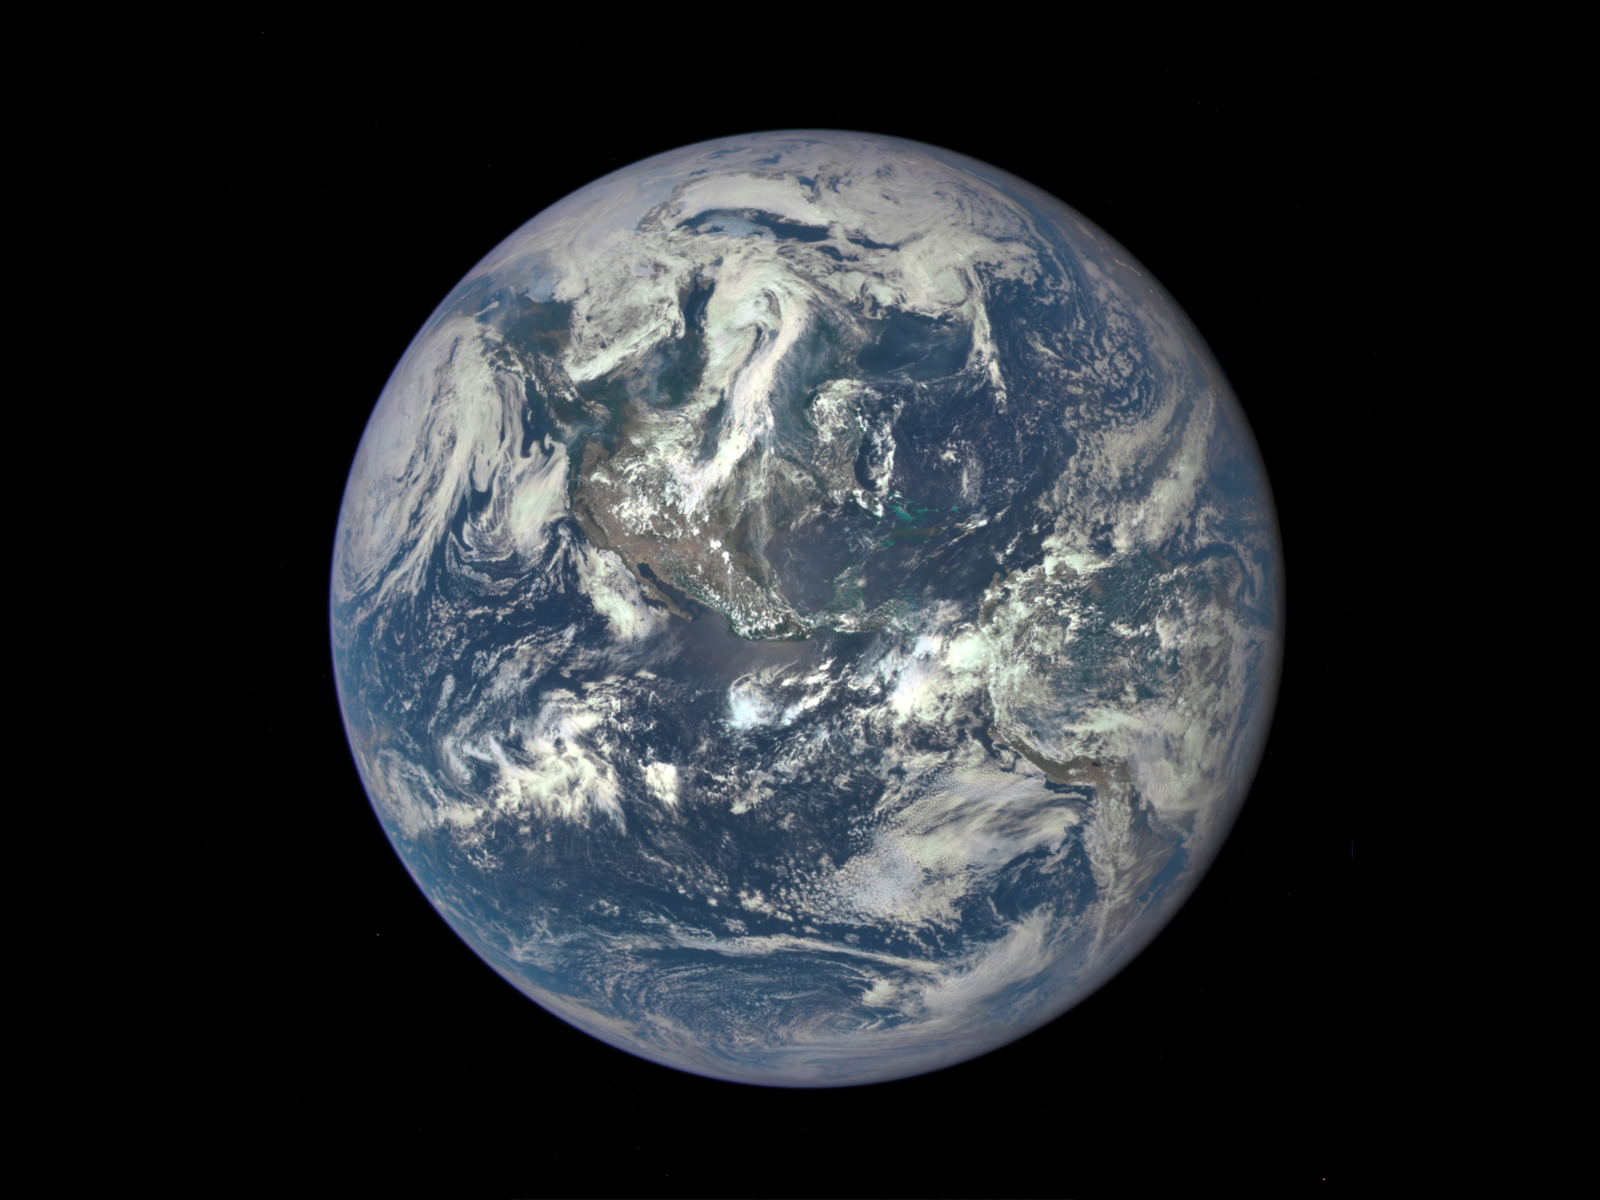 EPIC Image of Earth | Space Wallpaper